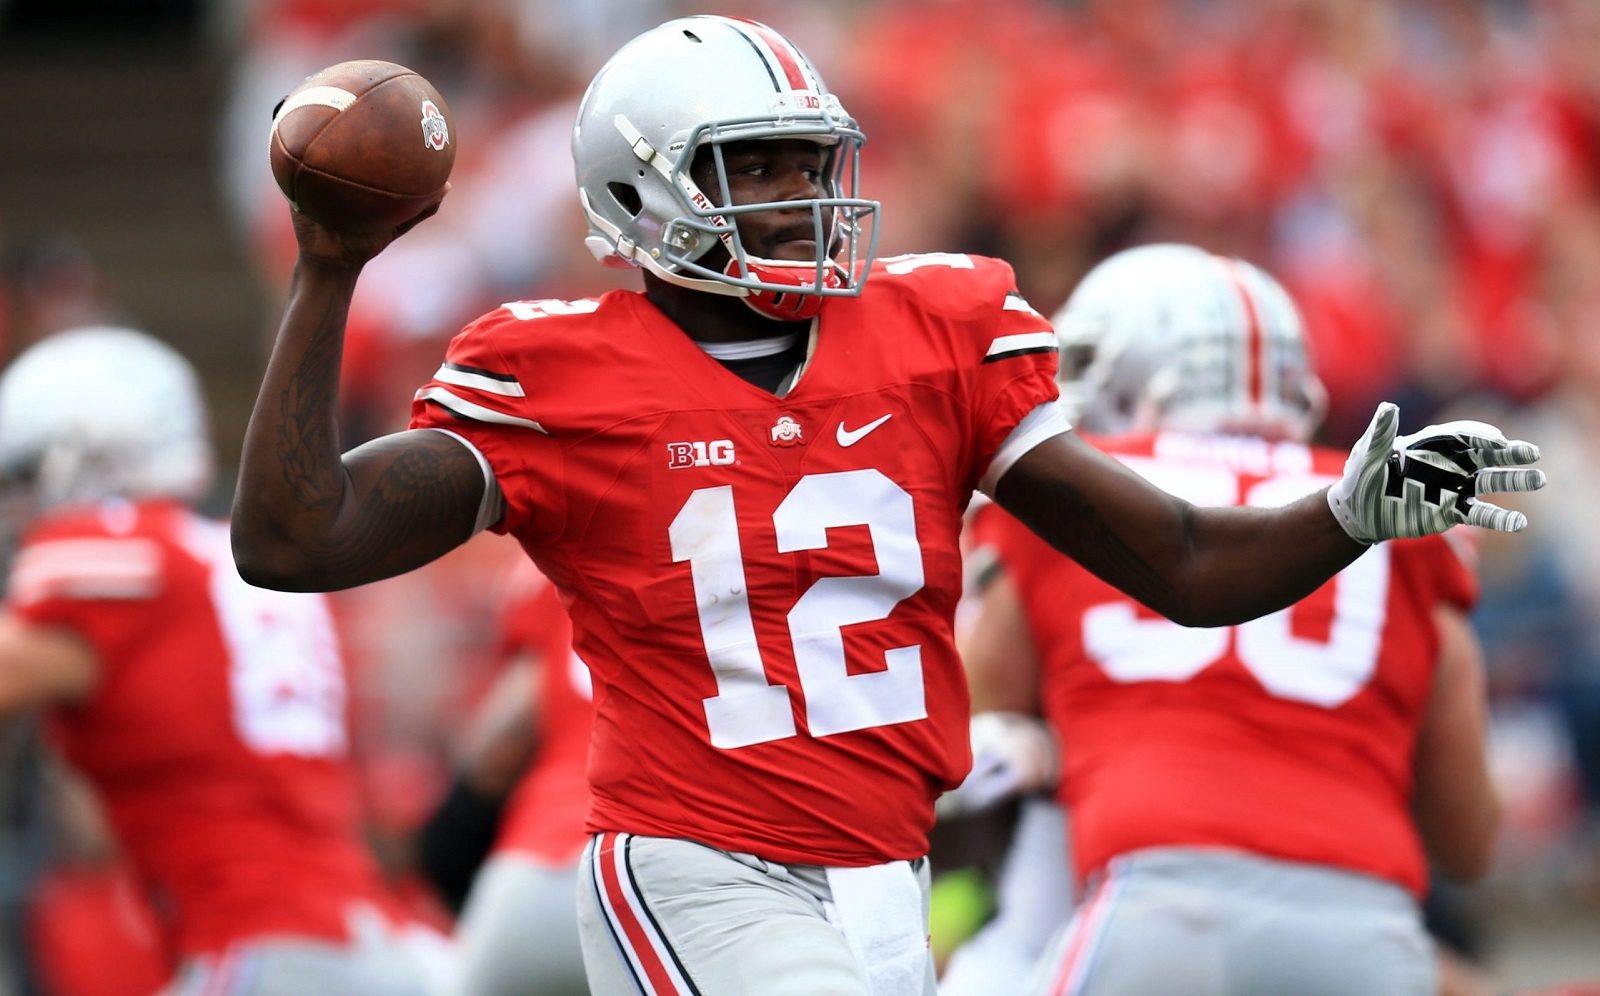 Ohio State quarterback Cardale Jones is a low-risk, high-reward pick for the Bills. (Andrew Weber/Getty Images)